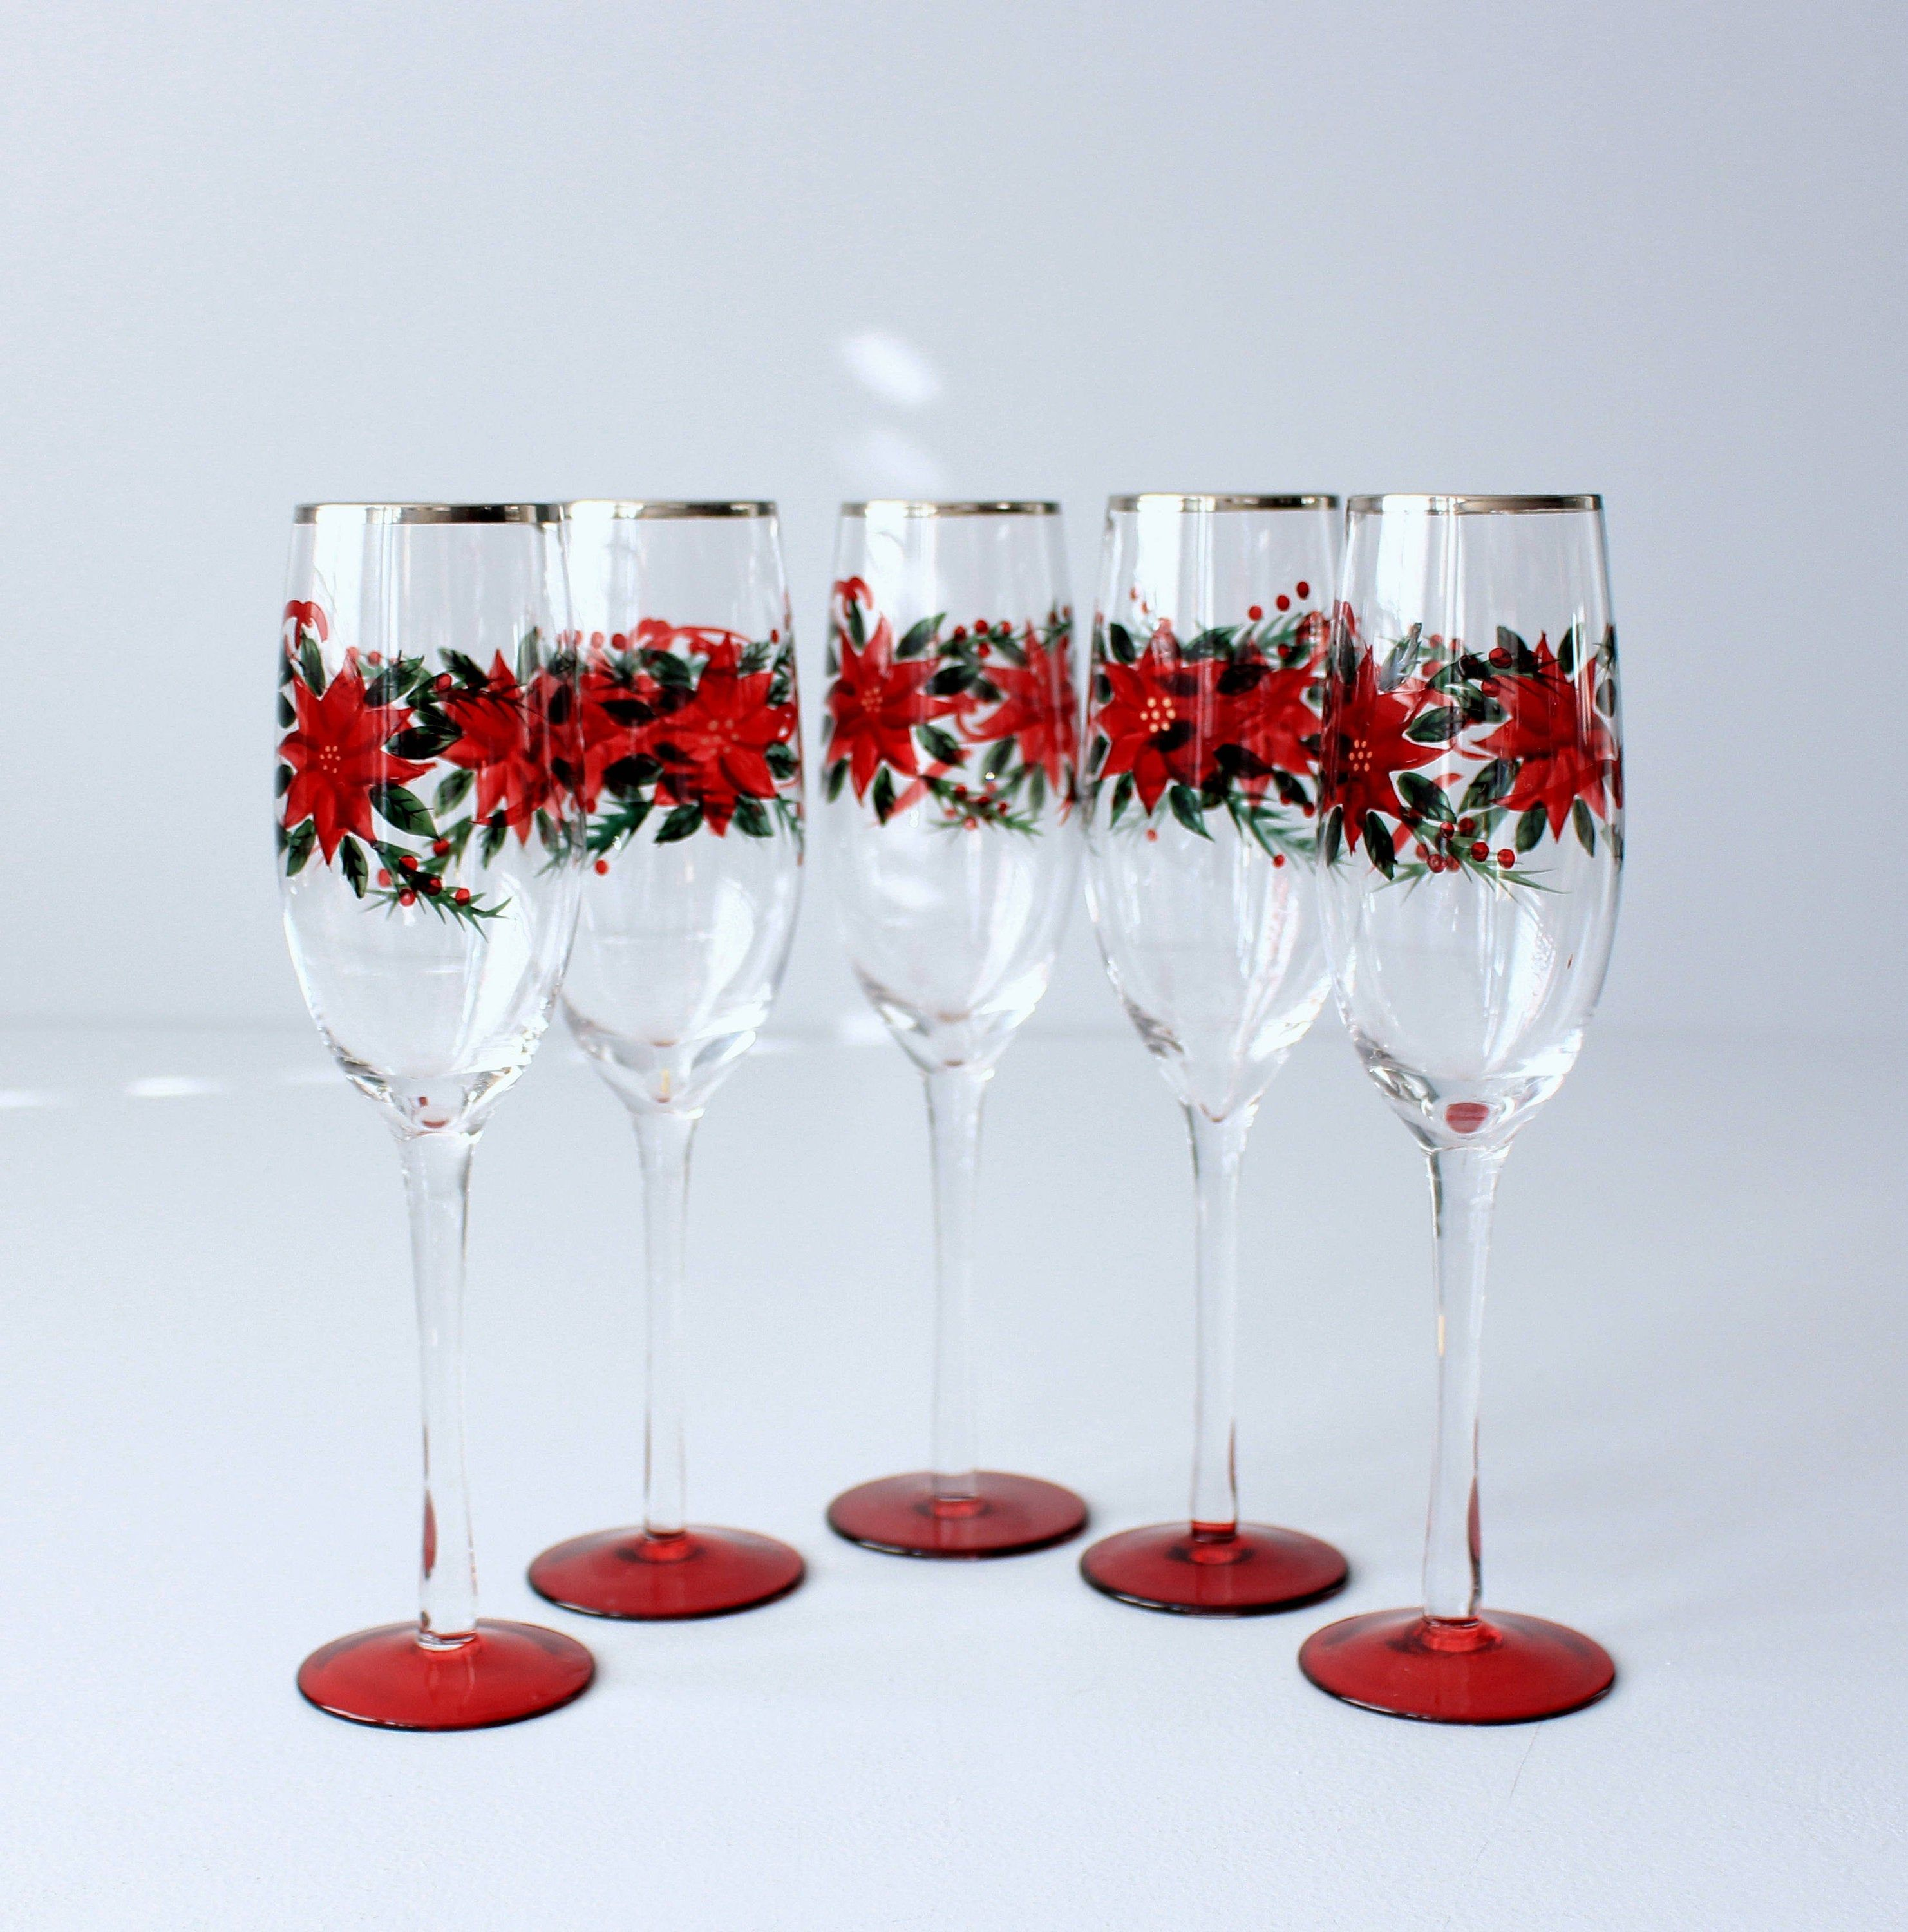 Crystal Wine Glasses Poinsettia Vintage Champagne Flute Vintage Christmas Glasses Red Long Stem Wine Glasses Hand Painted Set Of 5 Crystal Wine Glasses Long Stem Wine Glasses Christmas Glasses